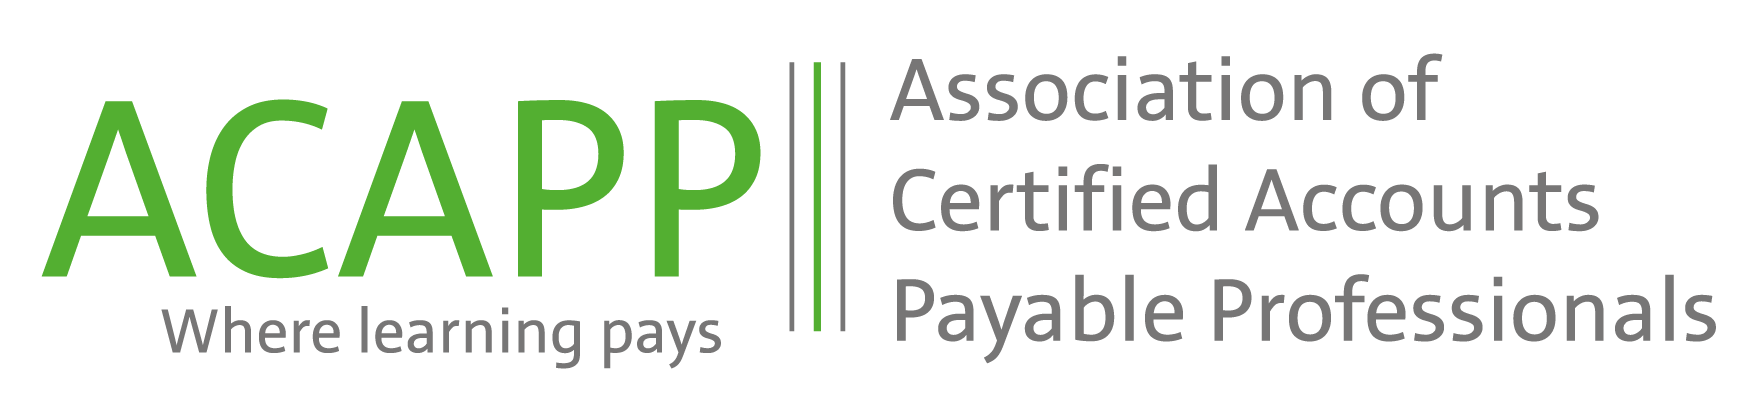 Association of Certified Accounts Payable Professionals